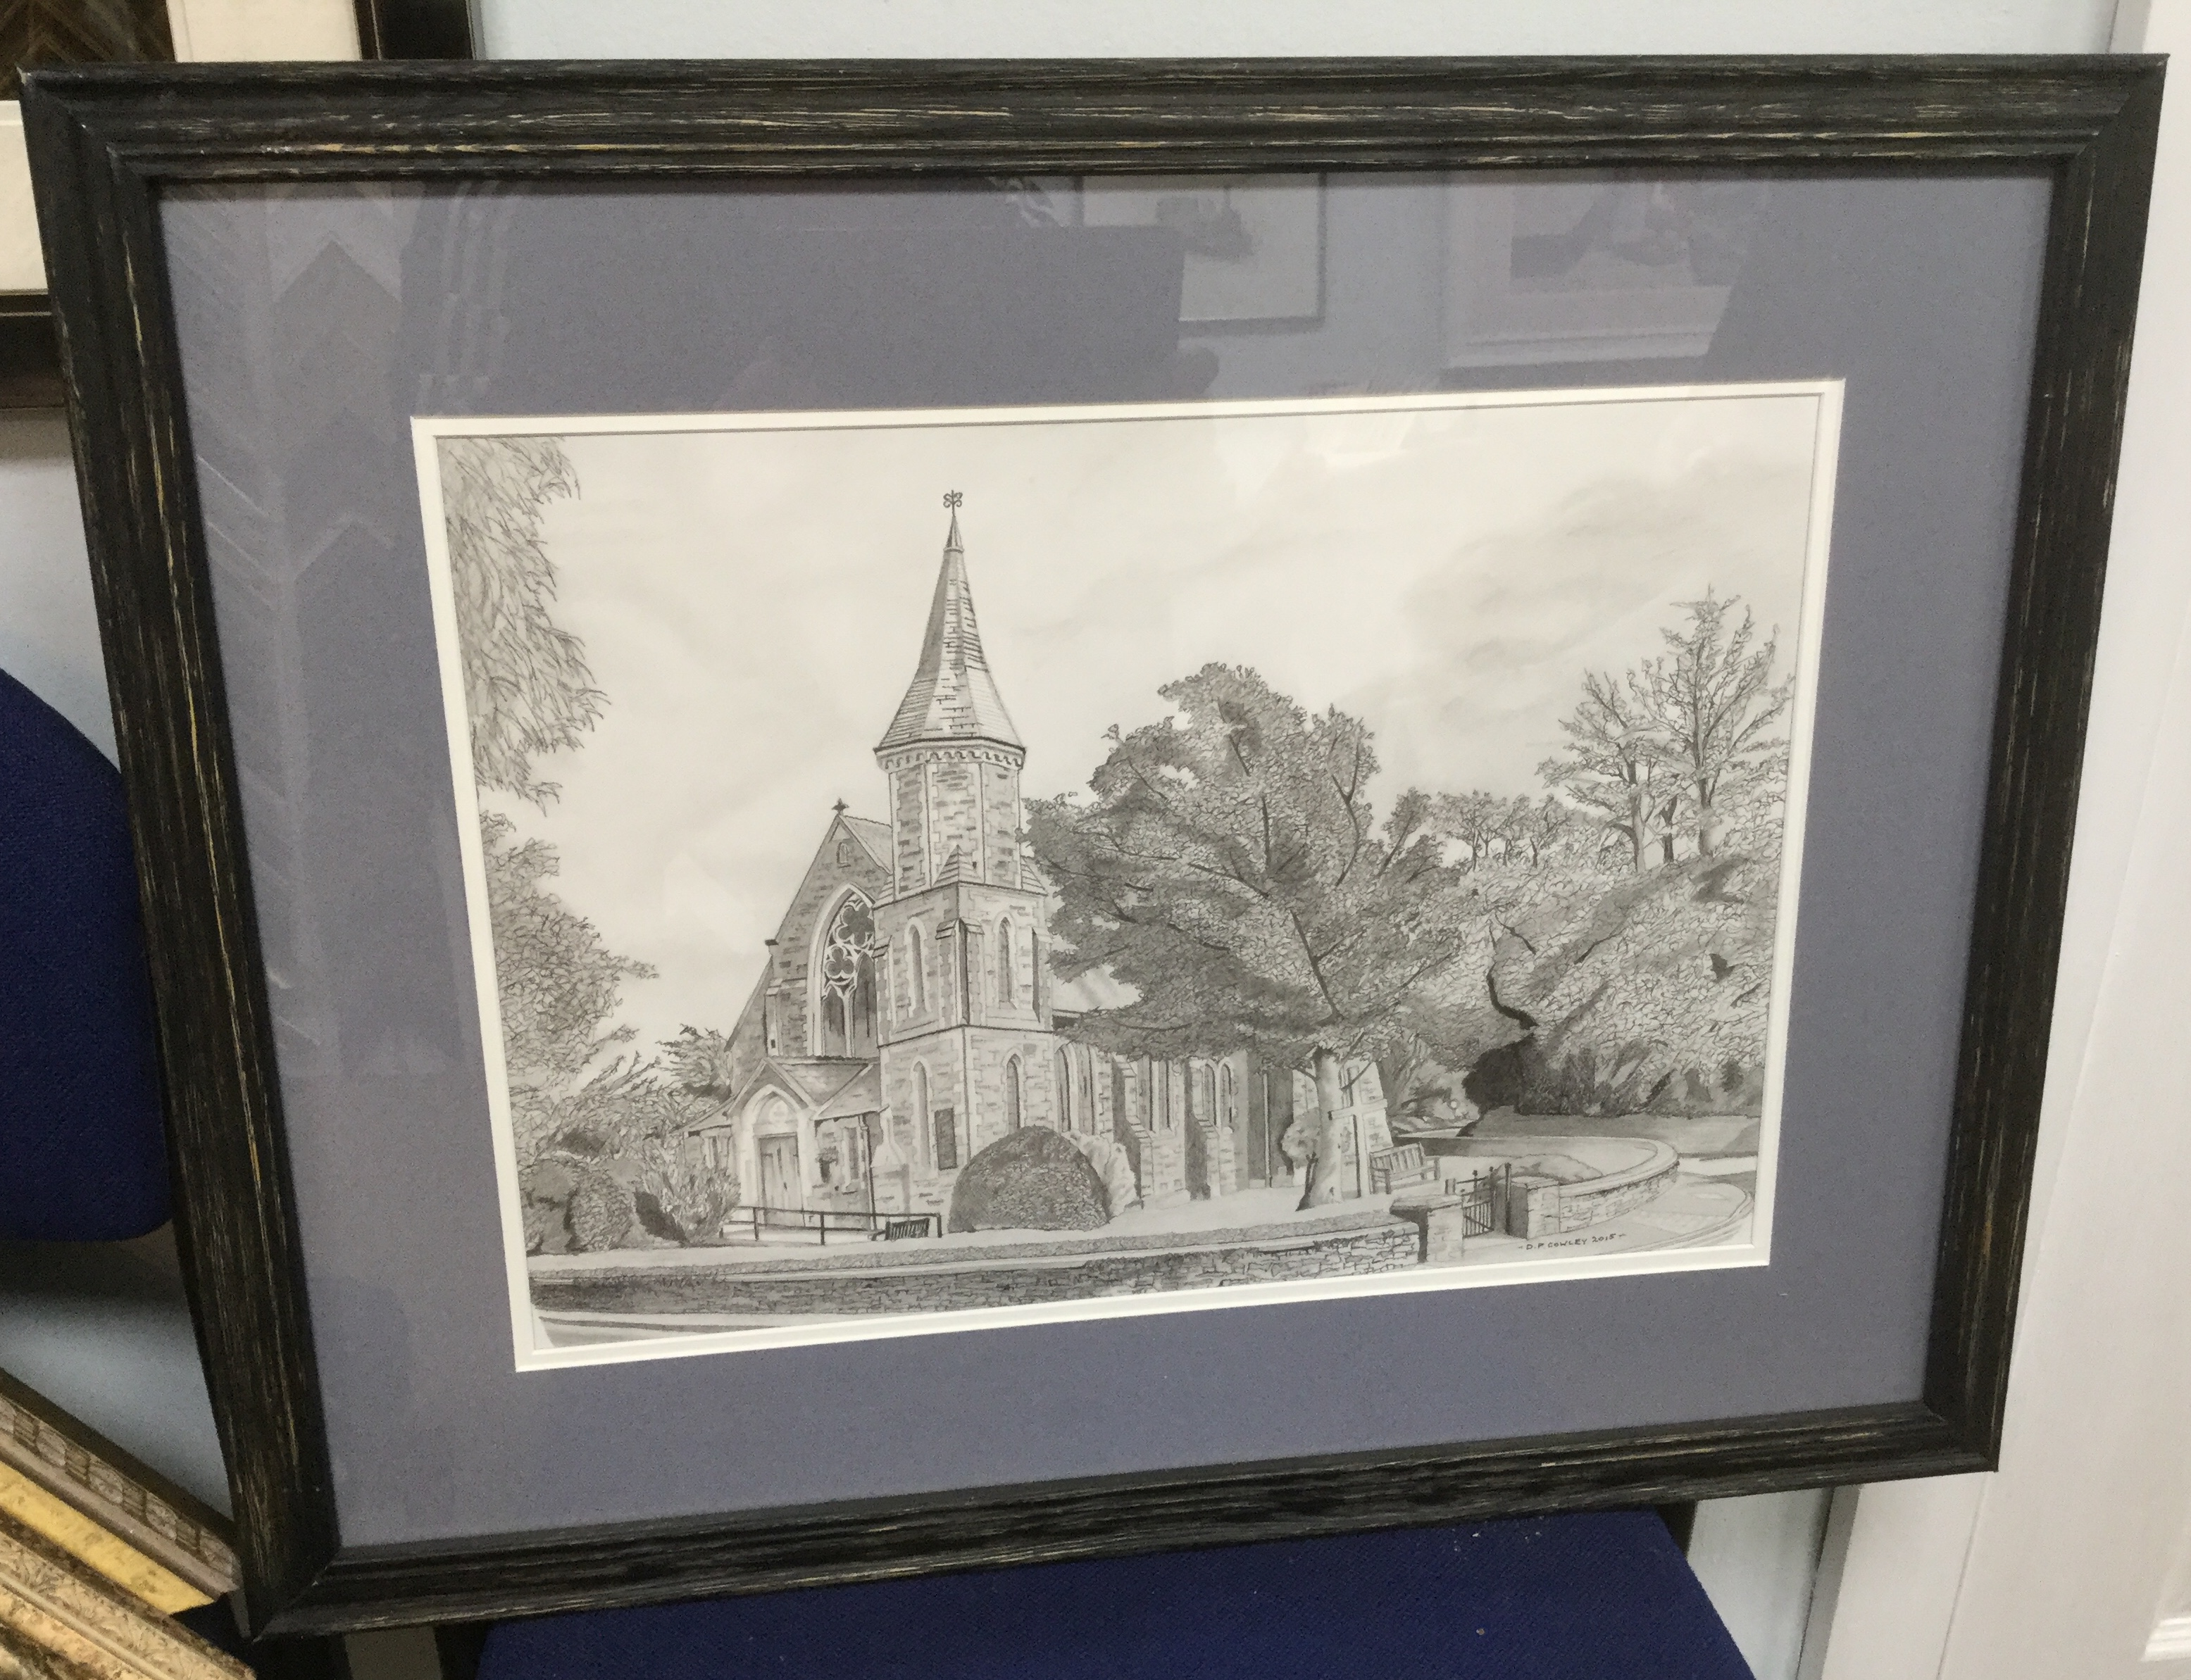 Sulby Church, Sulby, Isle Of Man in Pencil.